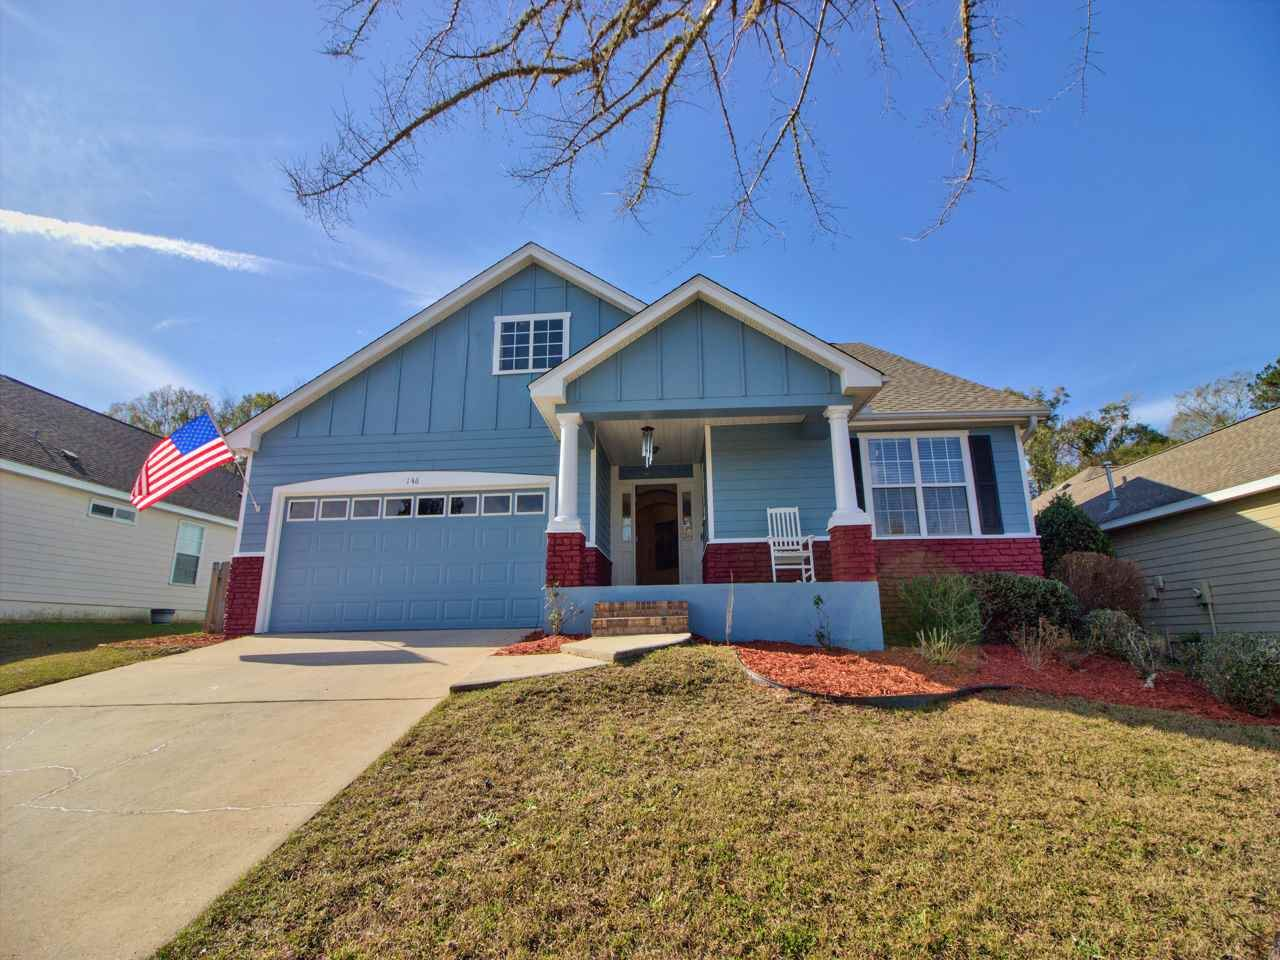 Photo of 146 LEAH MARTIN Court, TALLAHASSEE, FL 32317 (MLS # 314287)